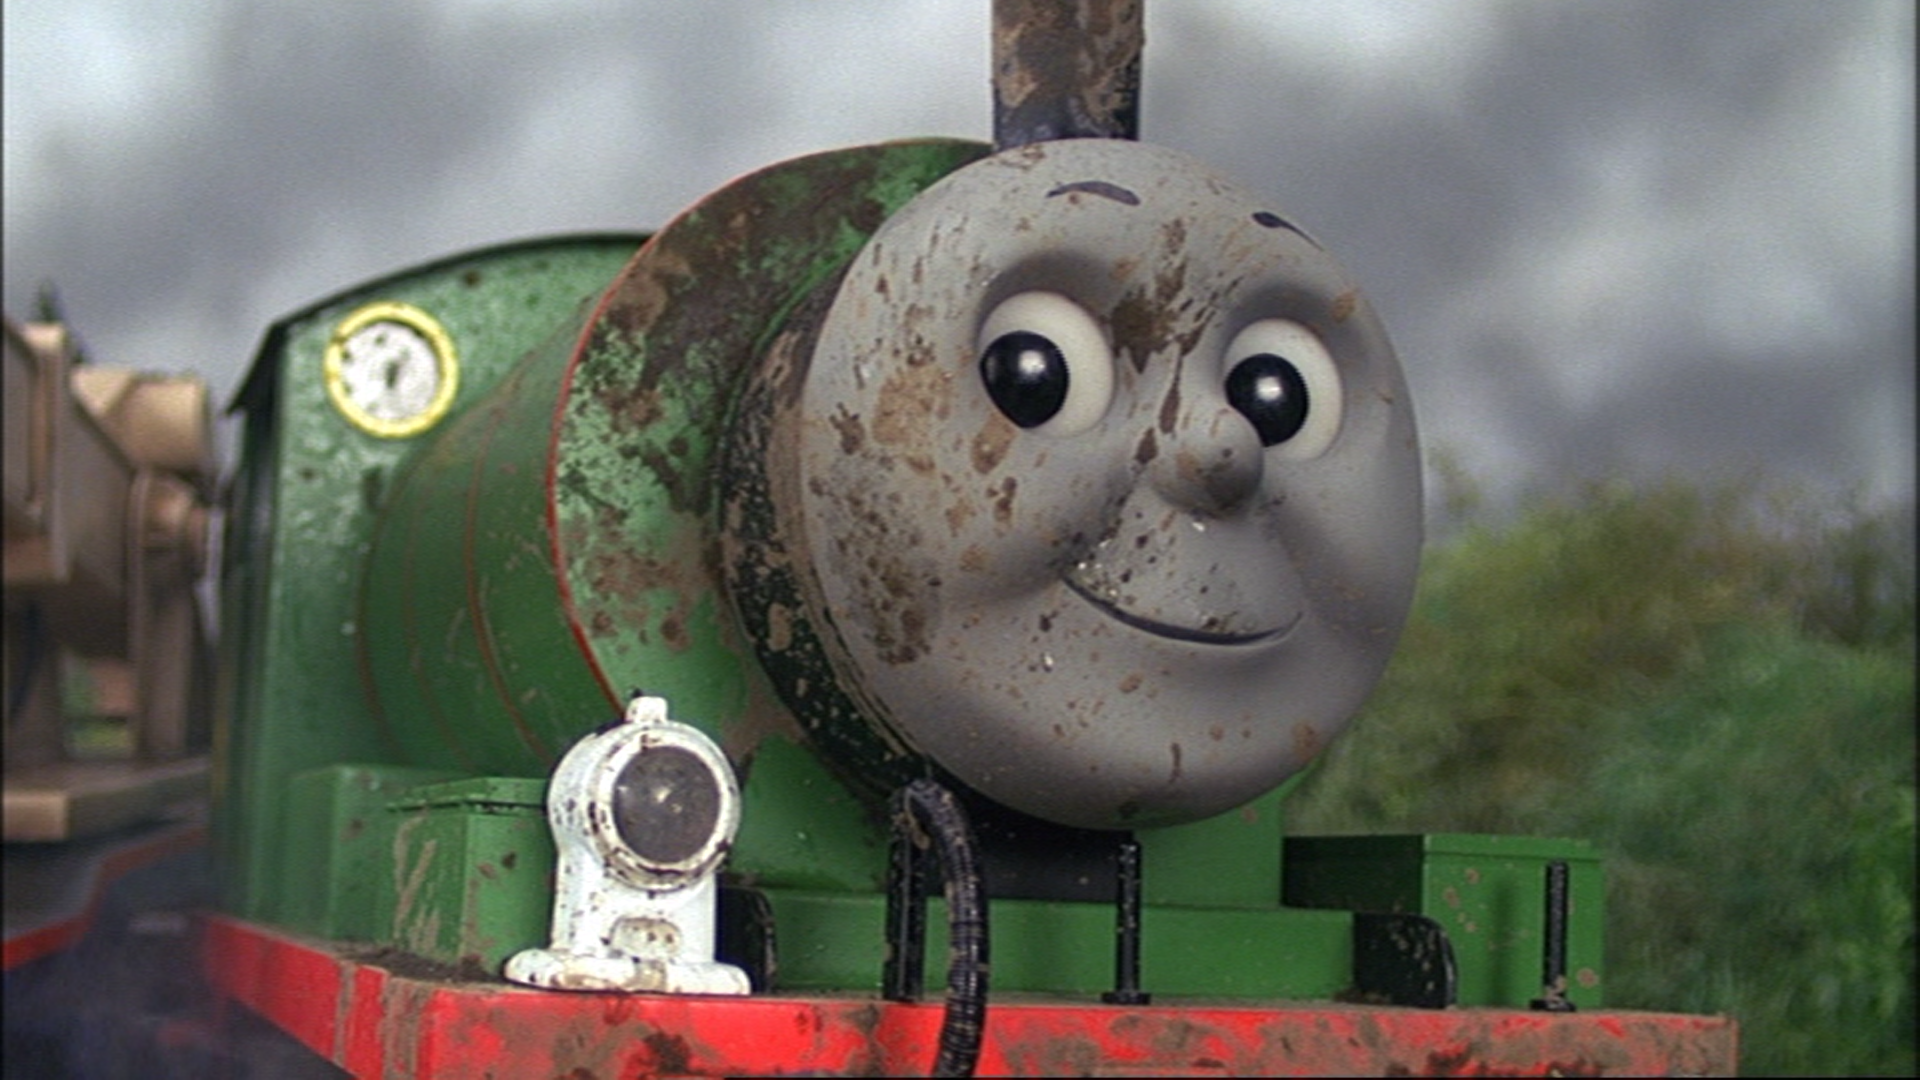 A Happy Day for Percy